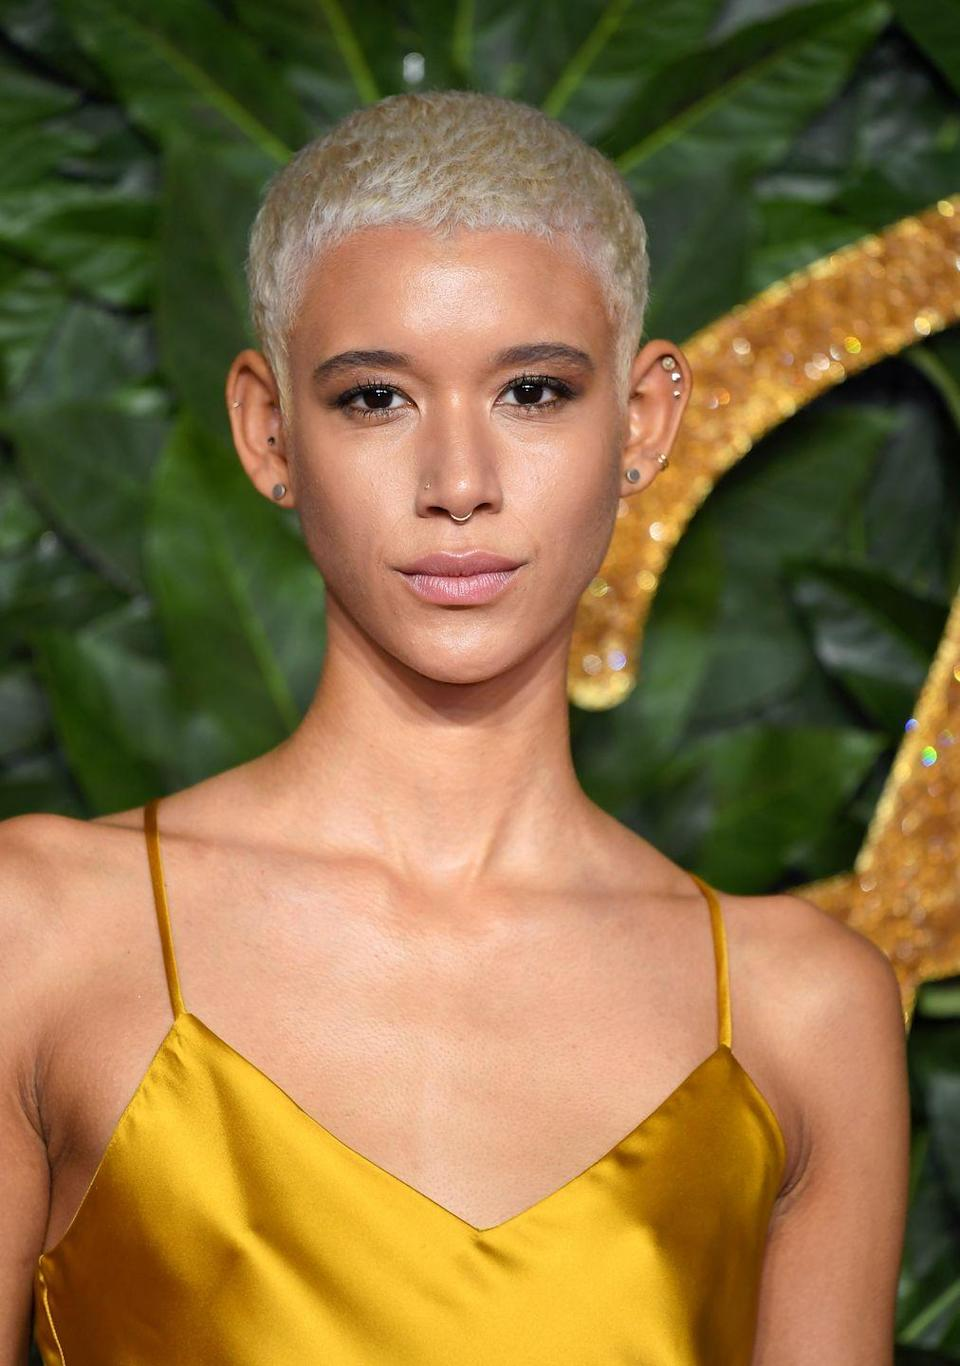 <p>Seriously short and peroxide blonde looks epic on model Dilone.</p>